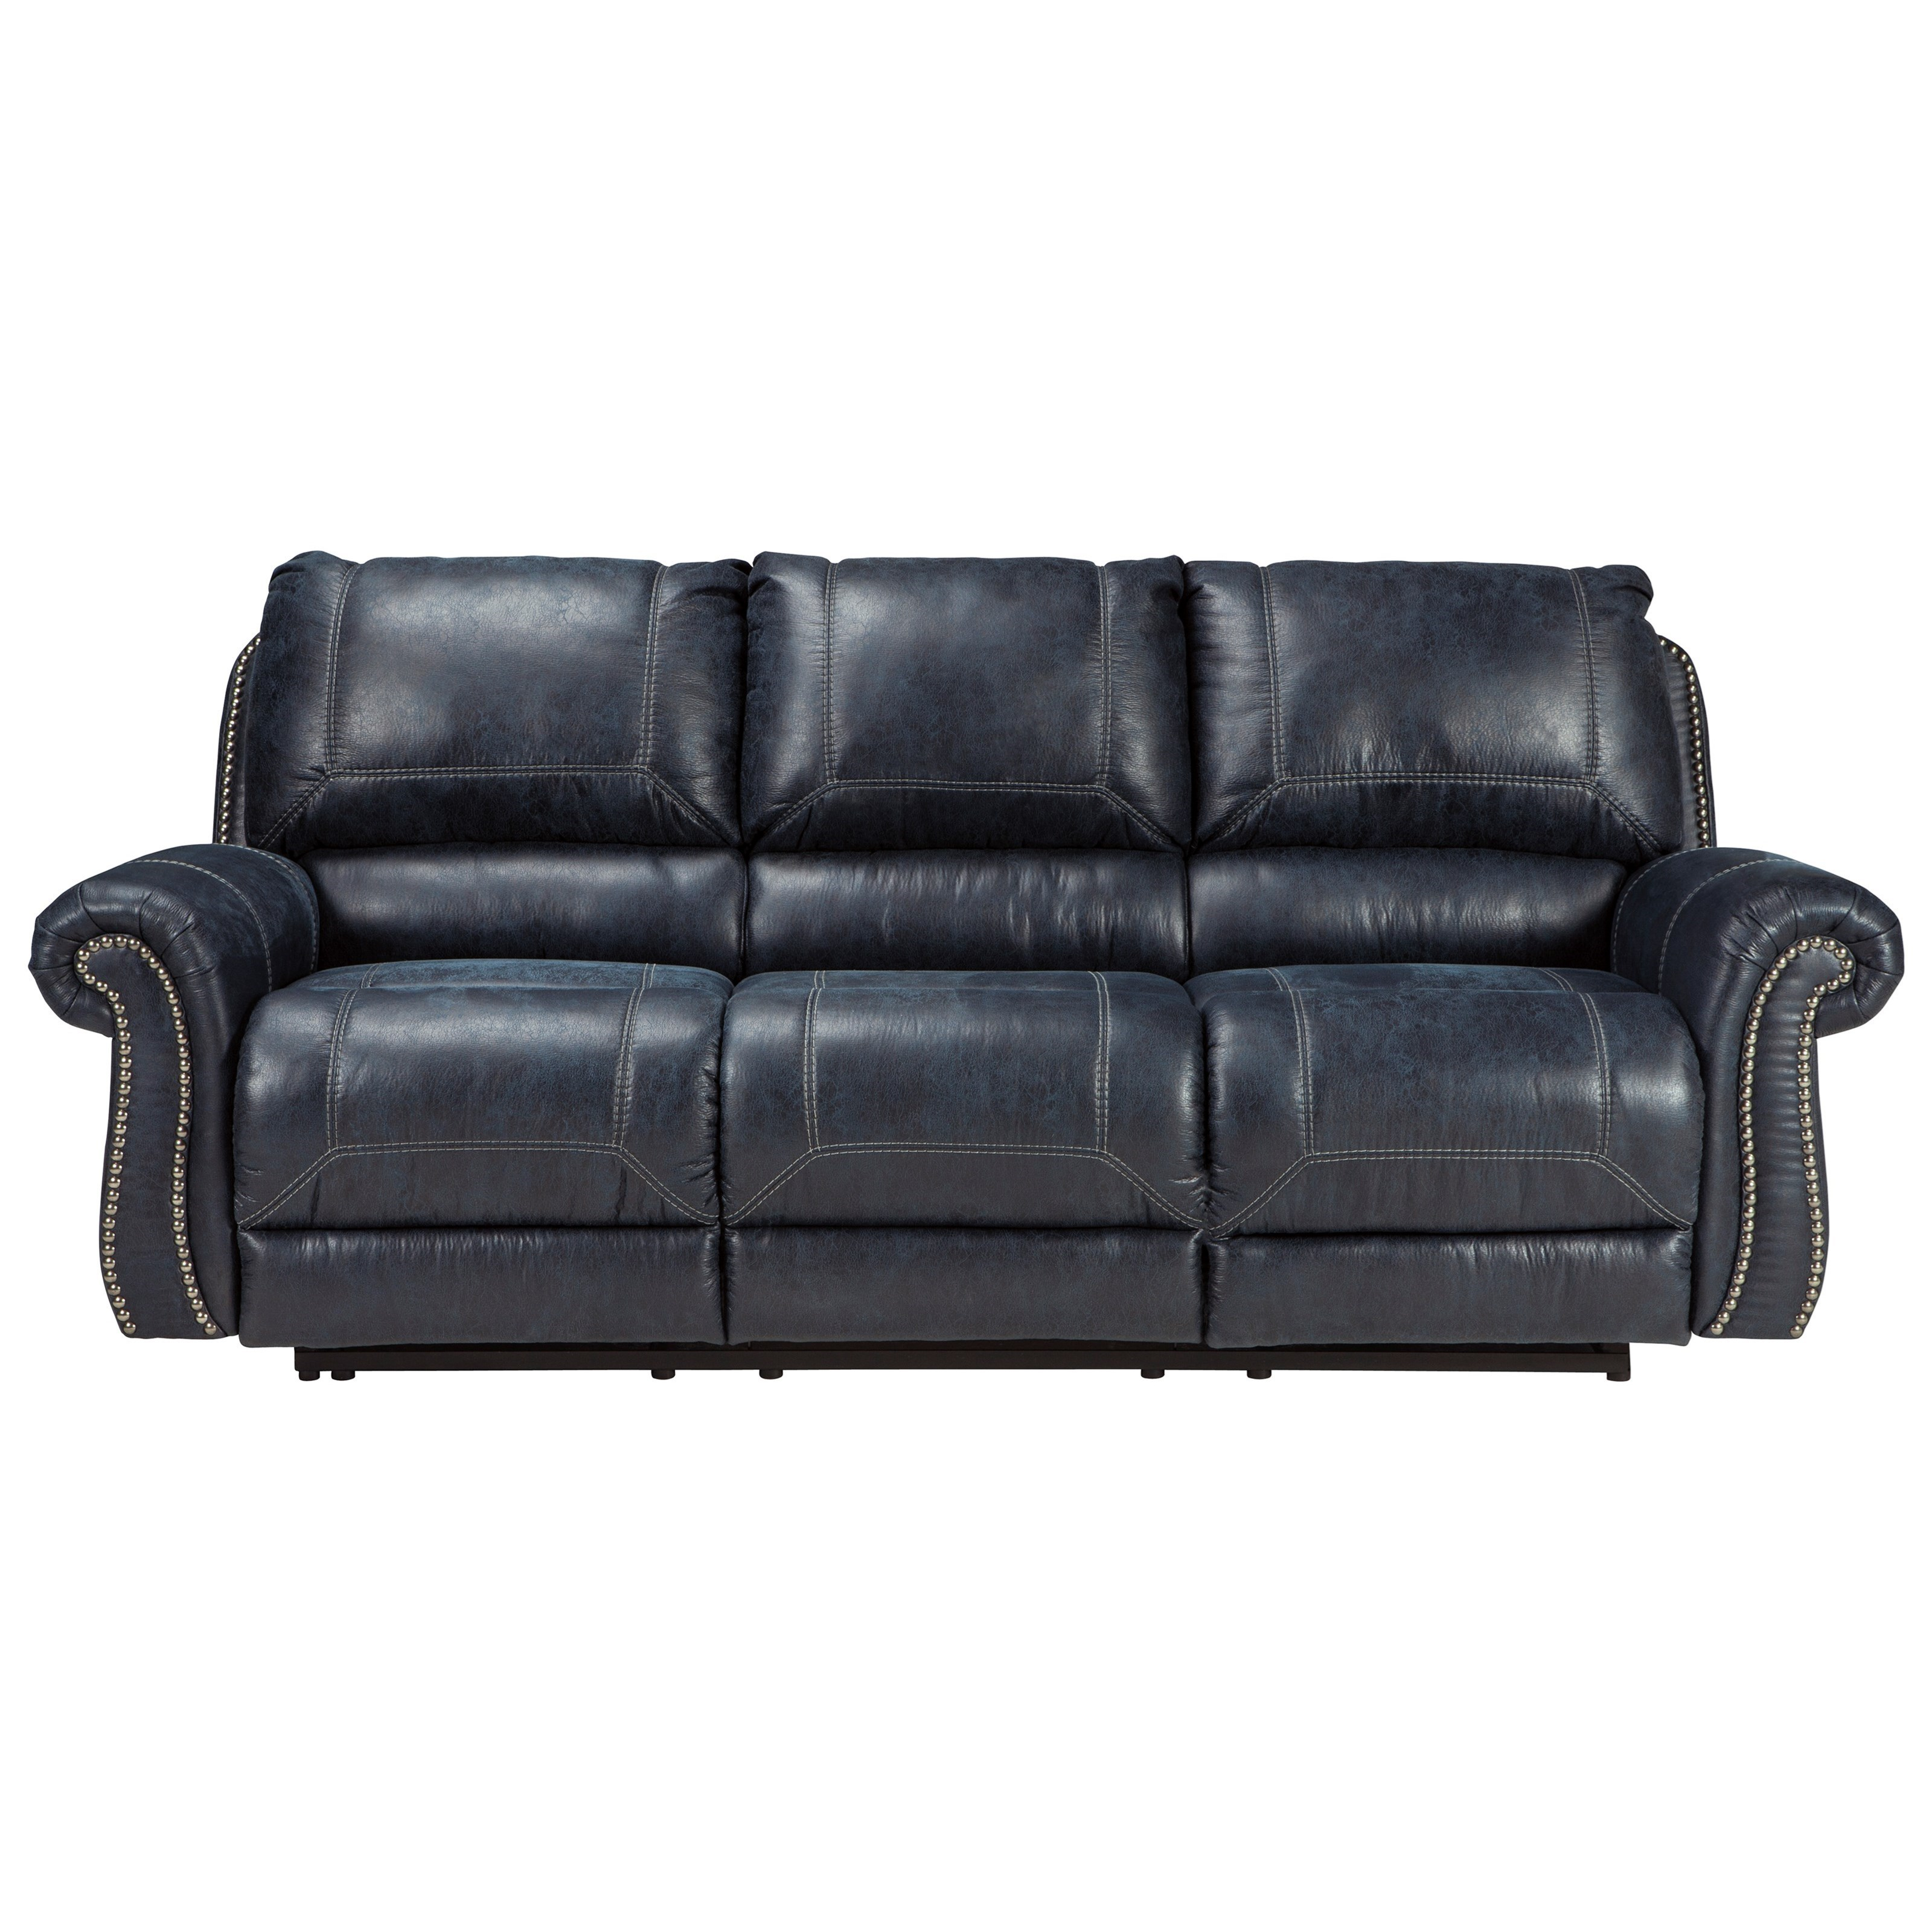 Signature Design by Ashley Milhaven Reclining Power Sofa - Item Number: 6330487